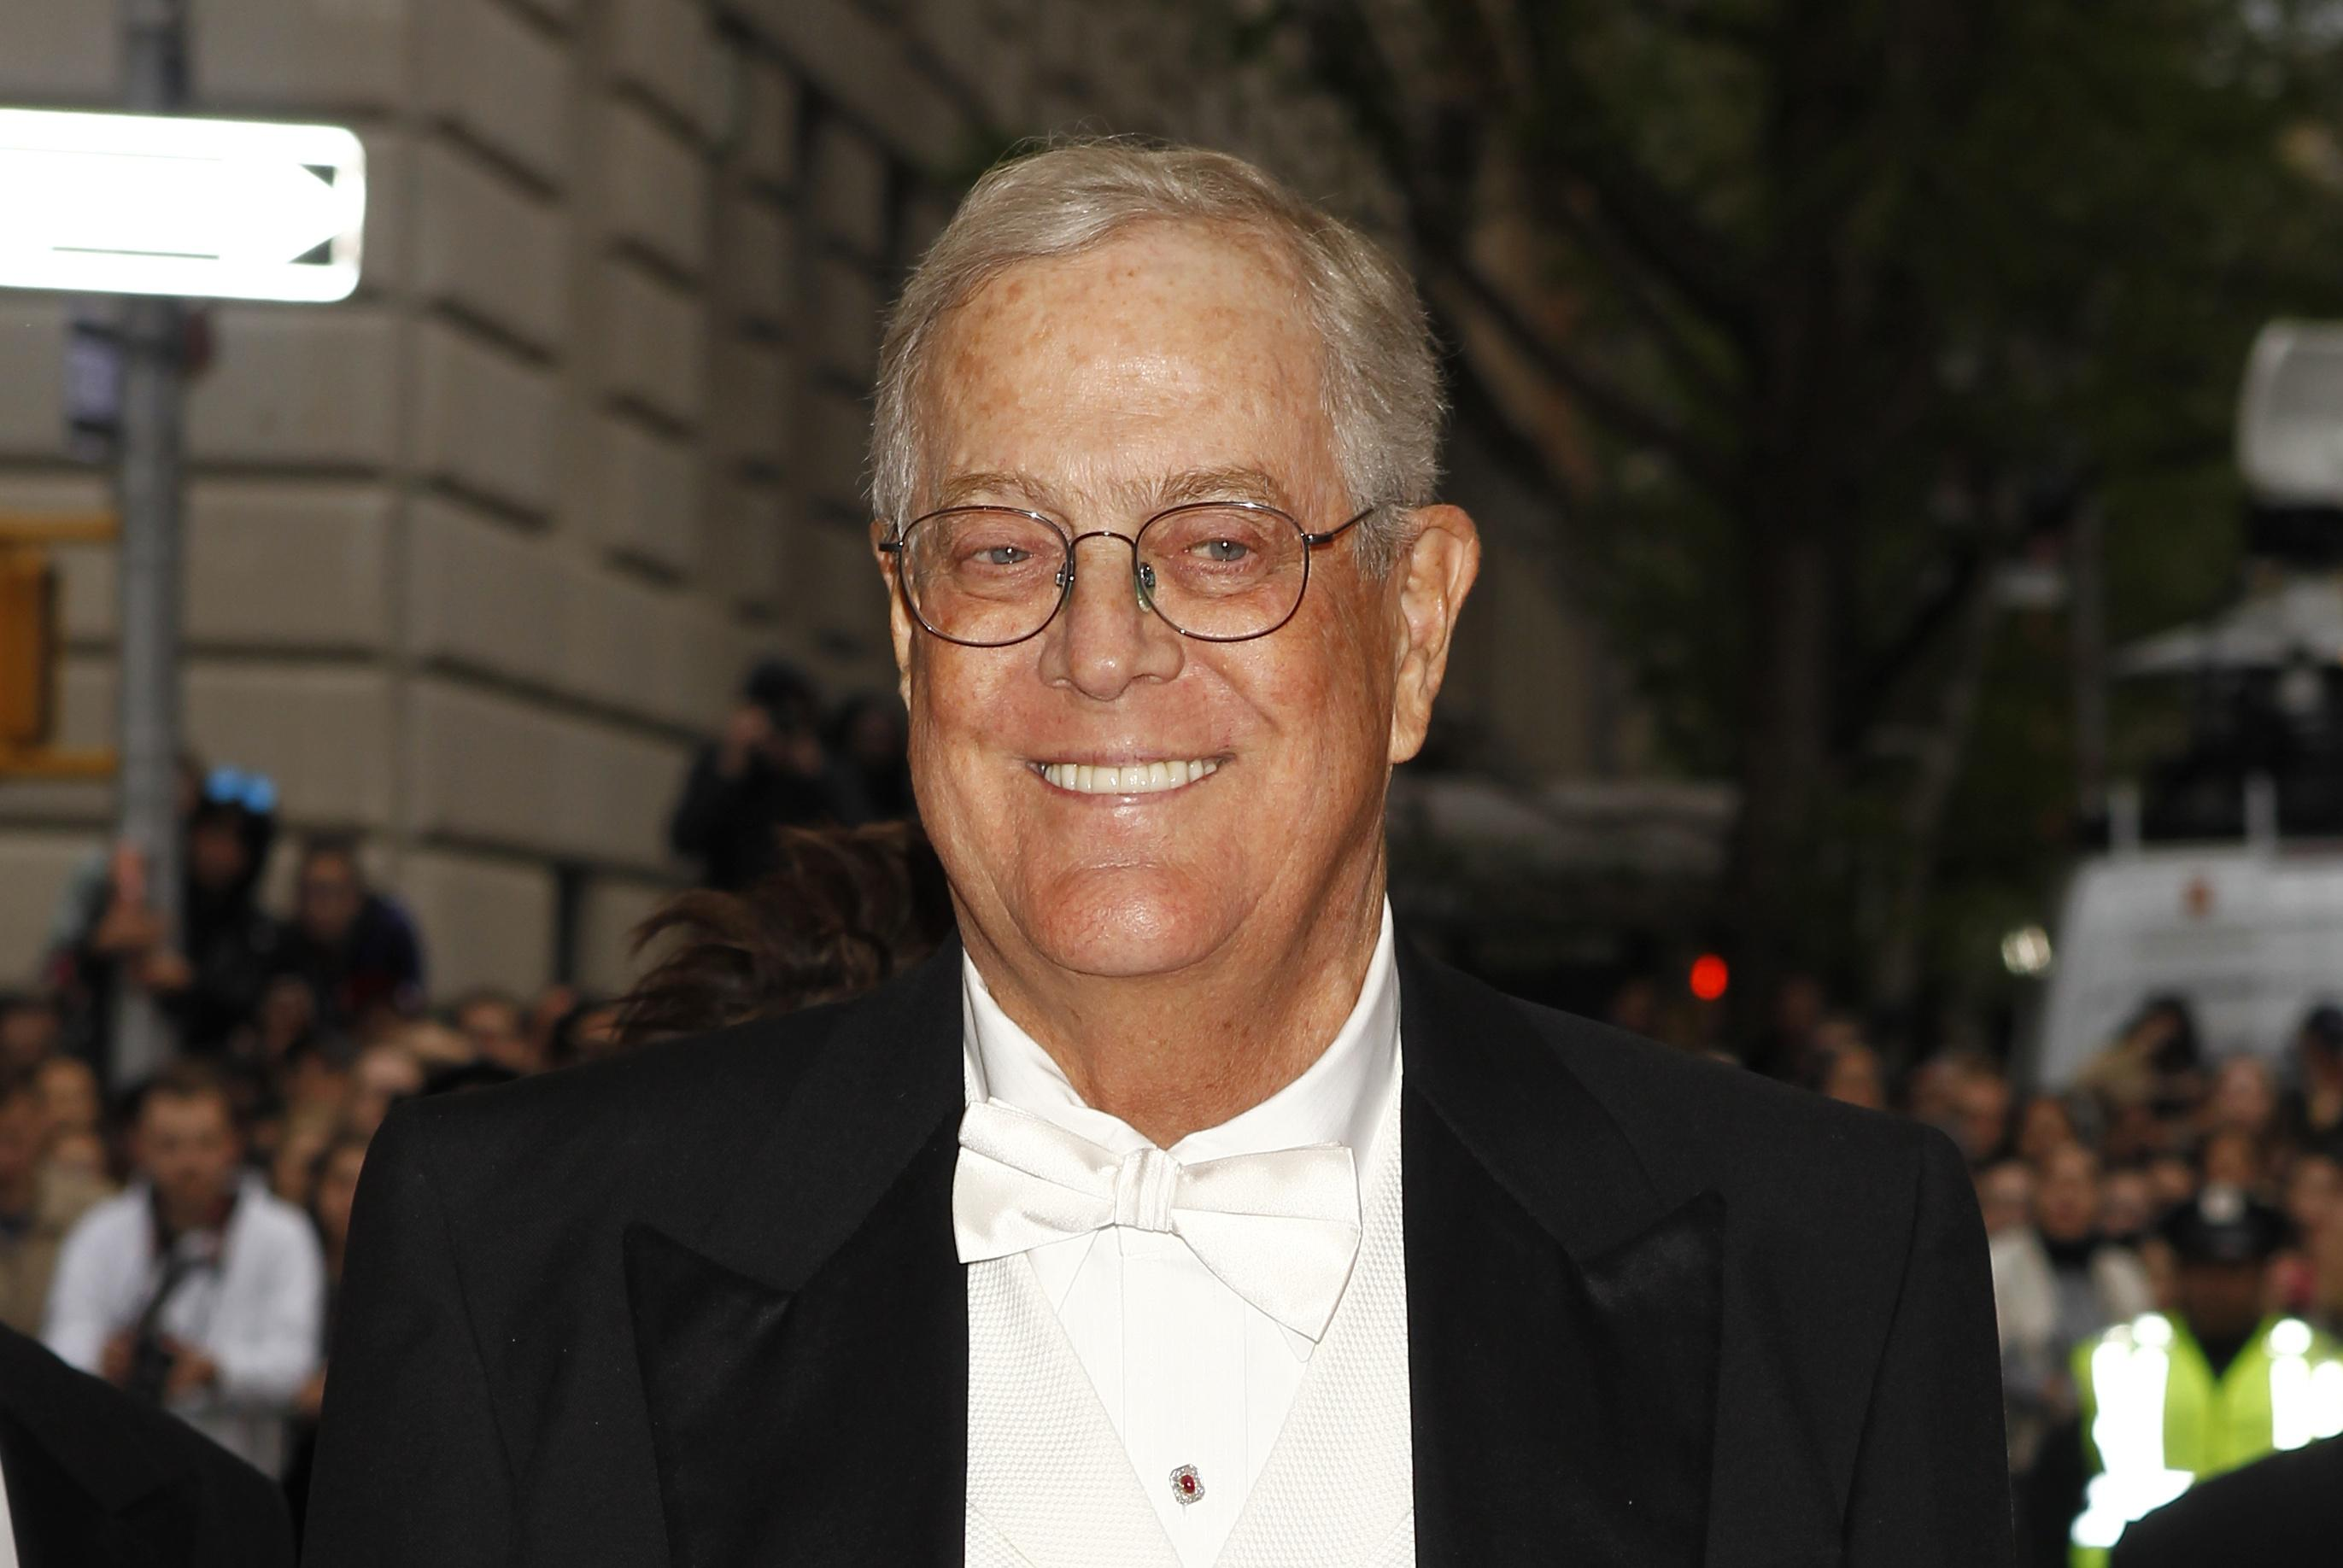 David Koch Steps Down From Family Business, Political Work